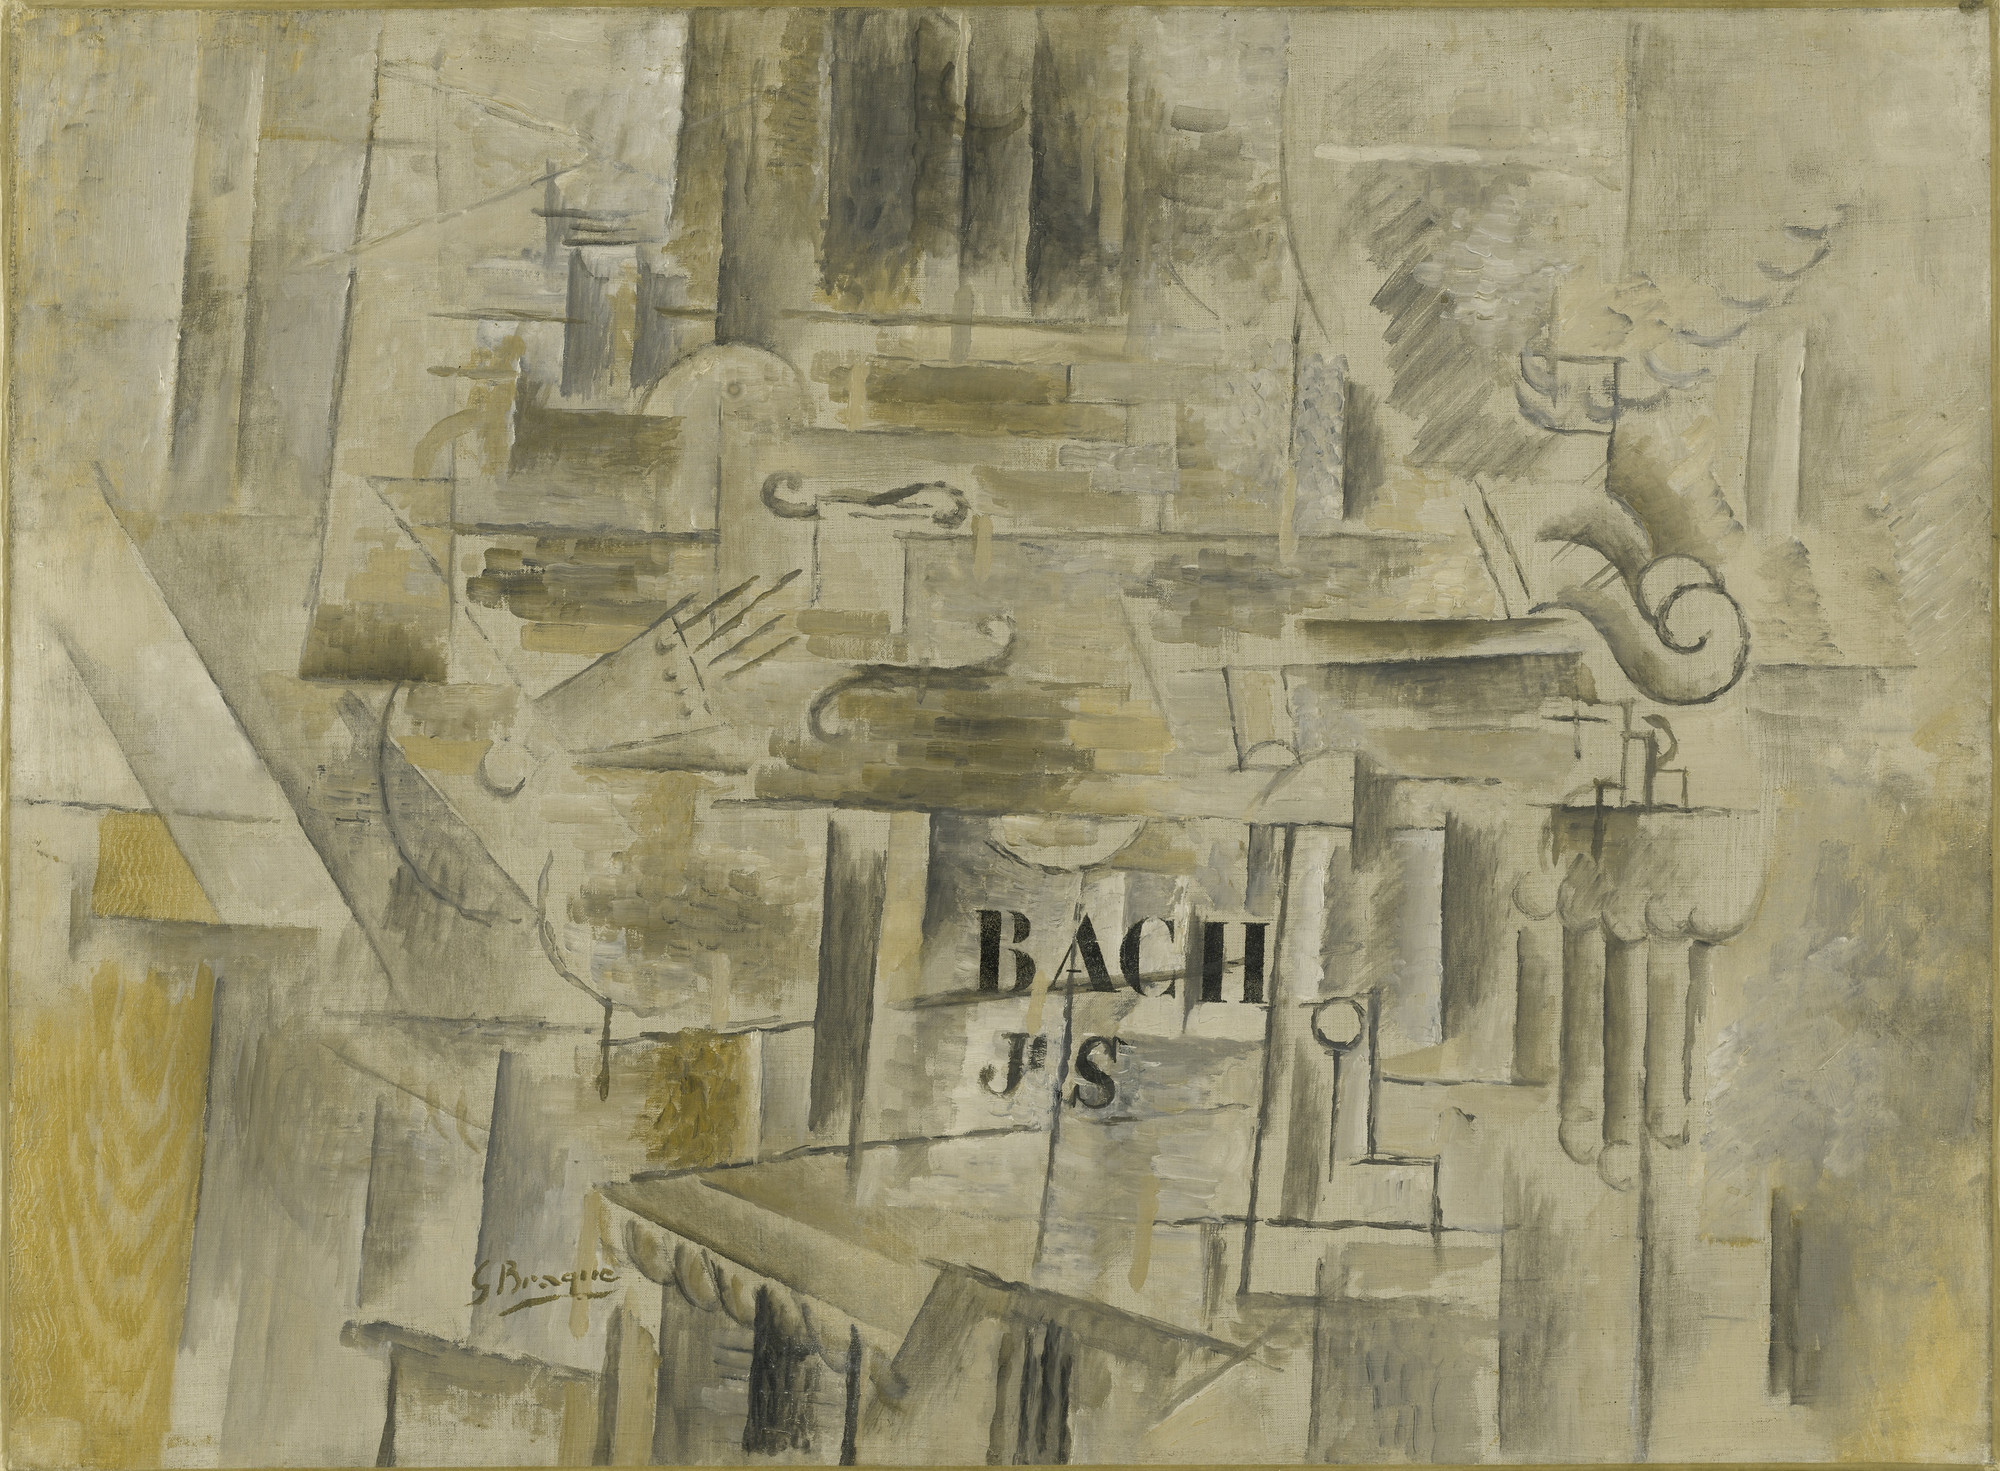 Georges Braque. Homage to J. S. Bach. winter 1911-12